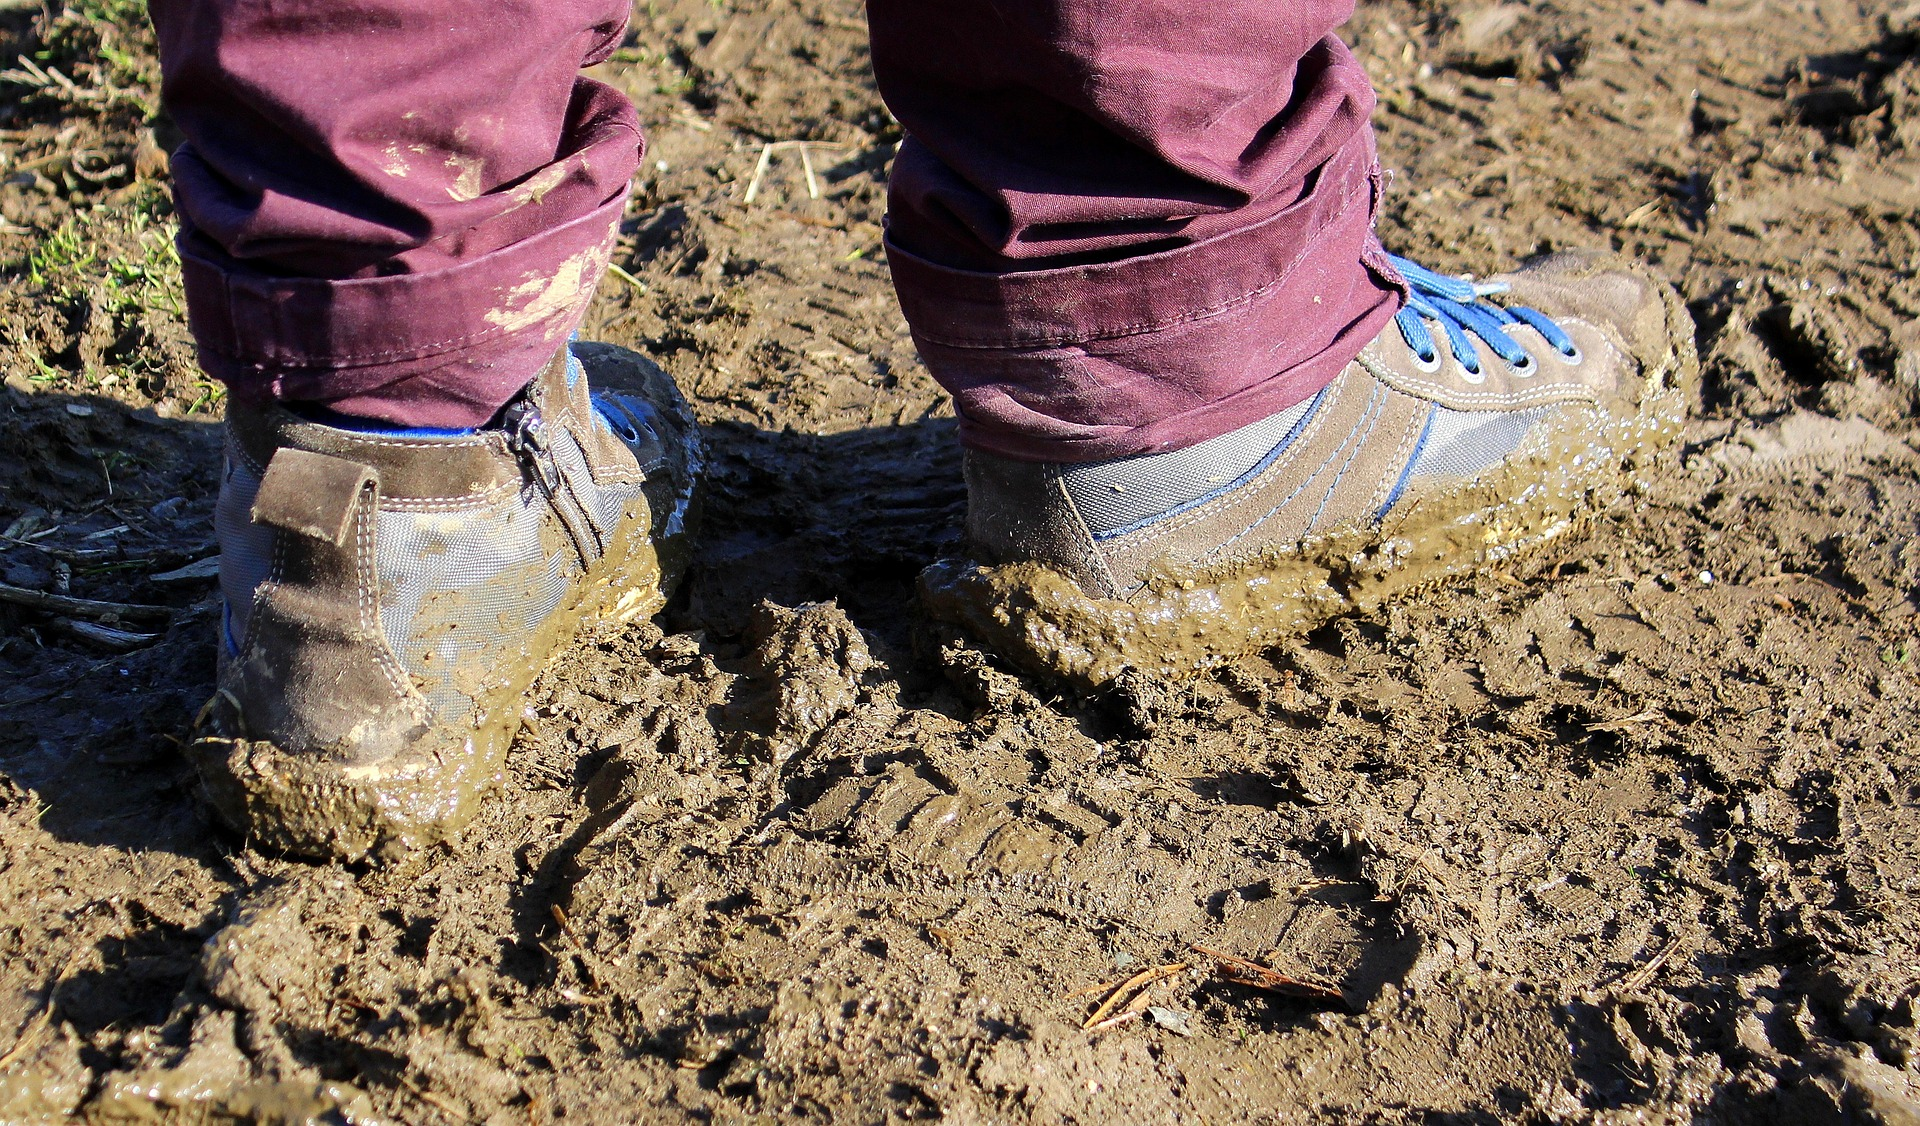 Work in the mud photo